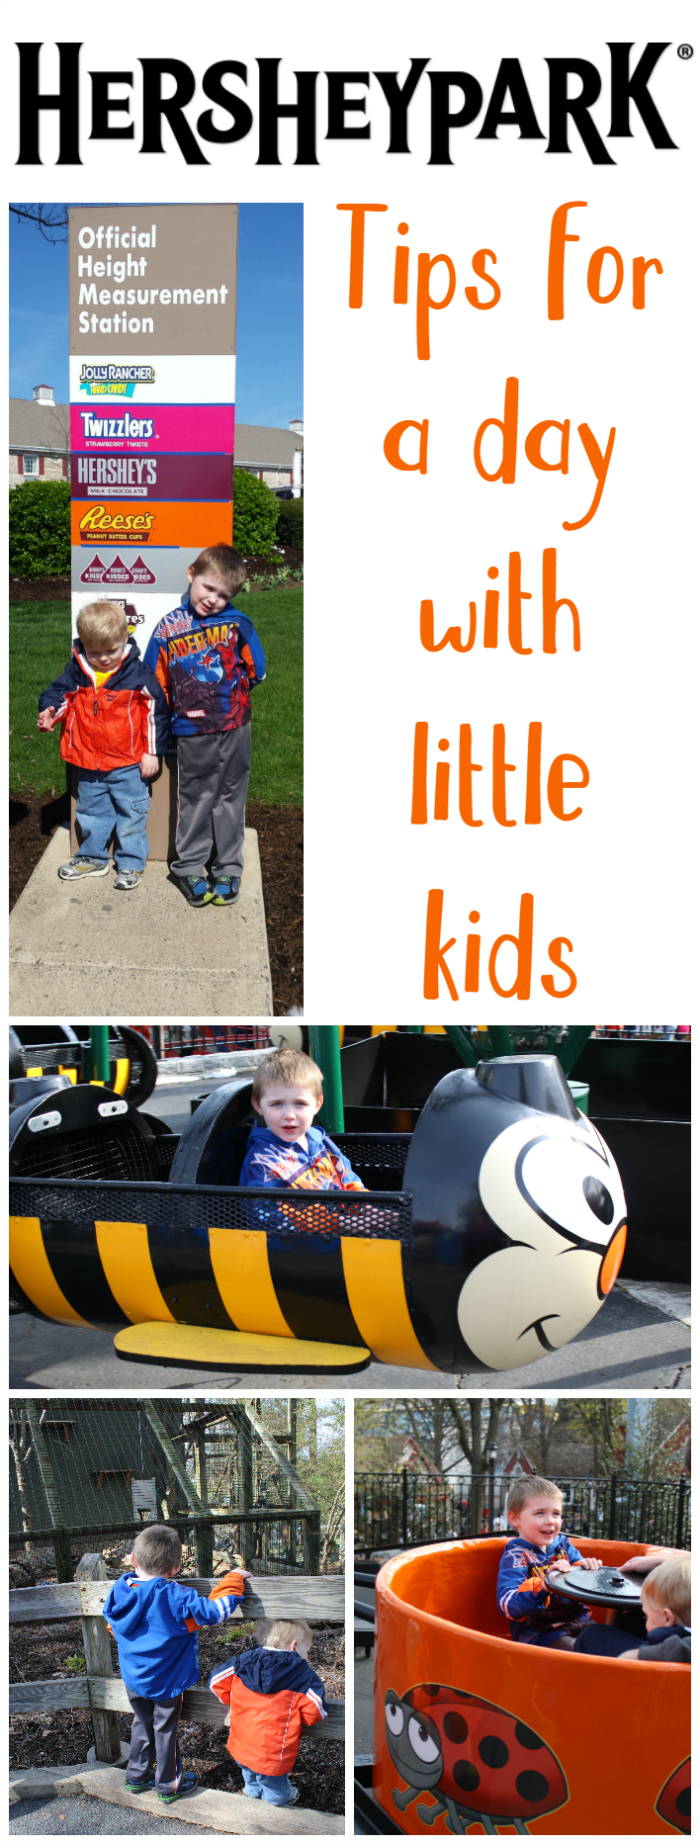 Hersheypark has plenty for little kids to ride and enjoy! Be sure to check out some of our tips for your visit with little ones.